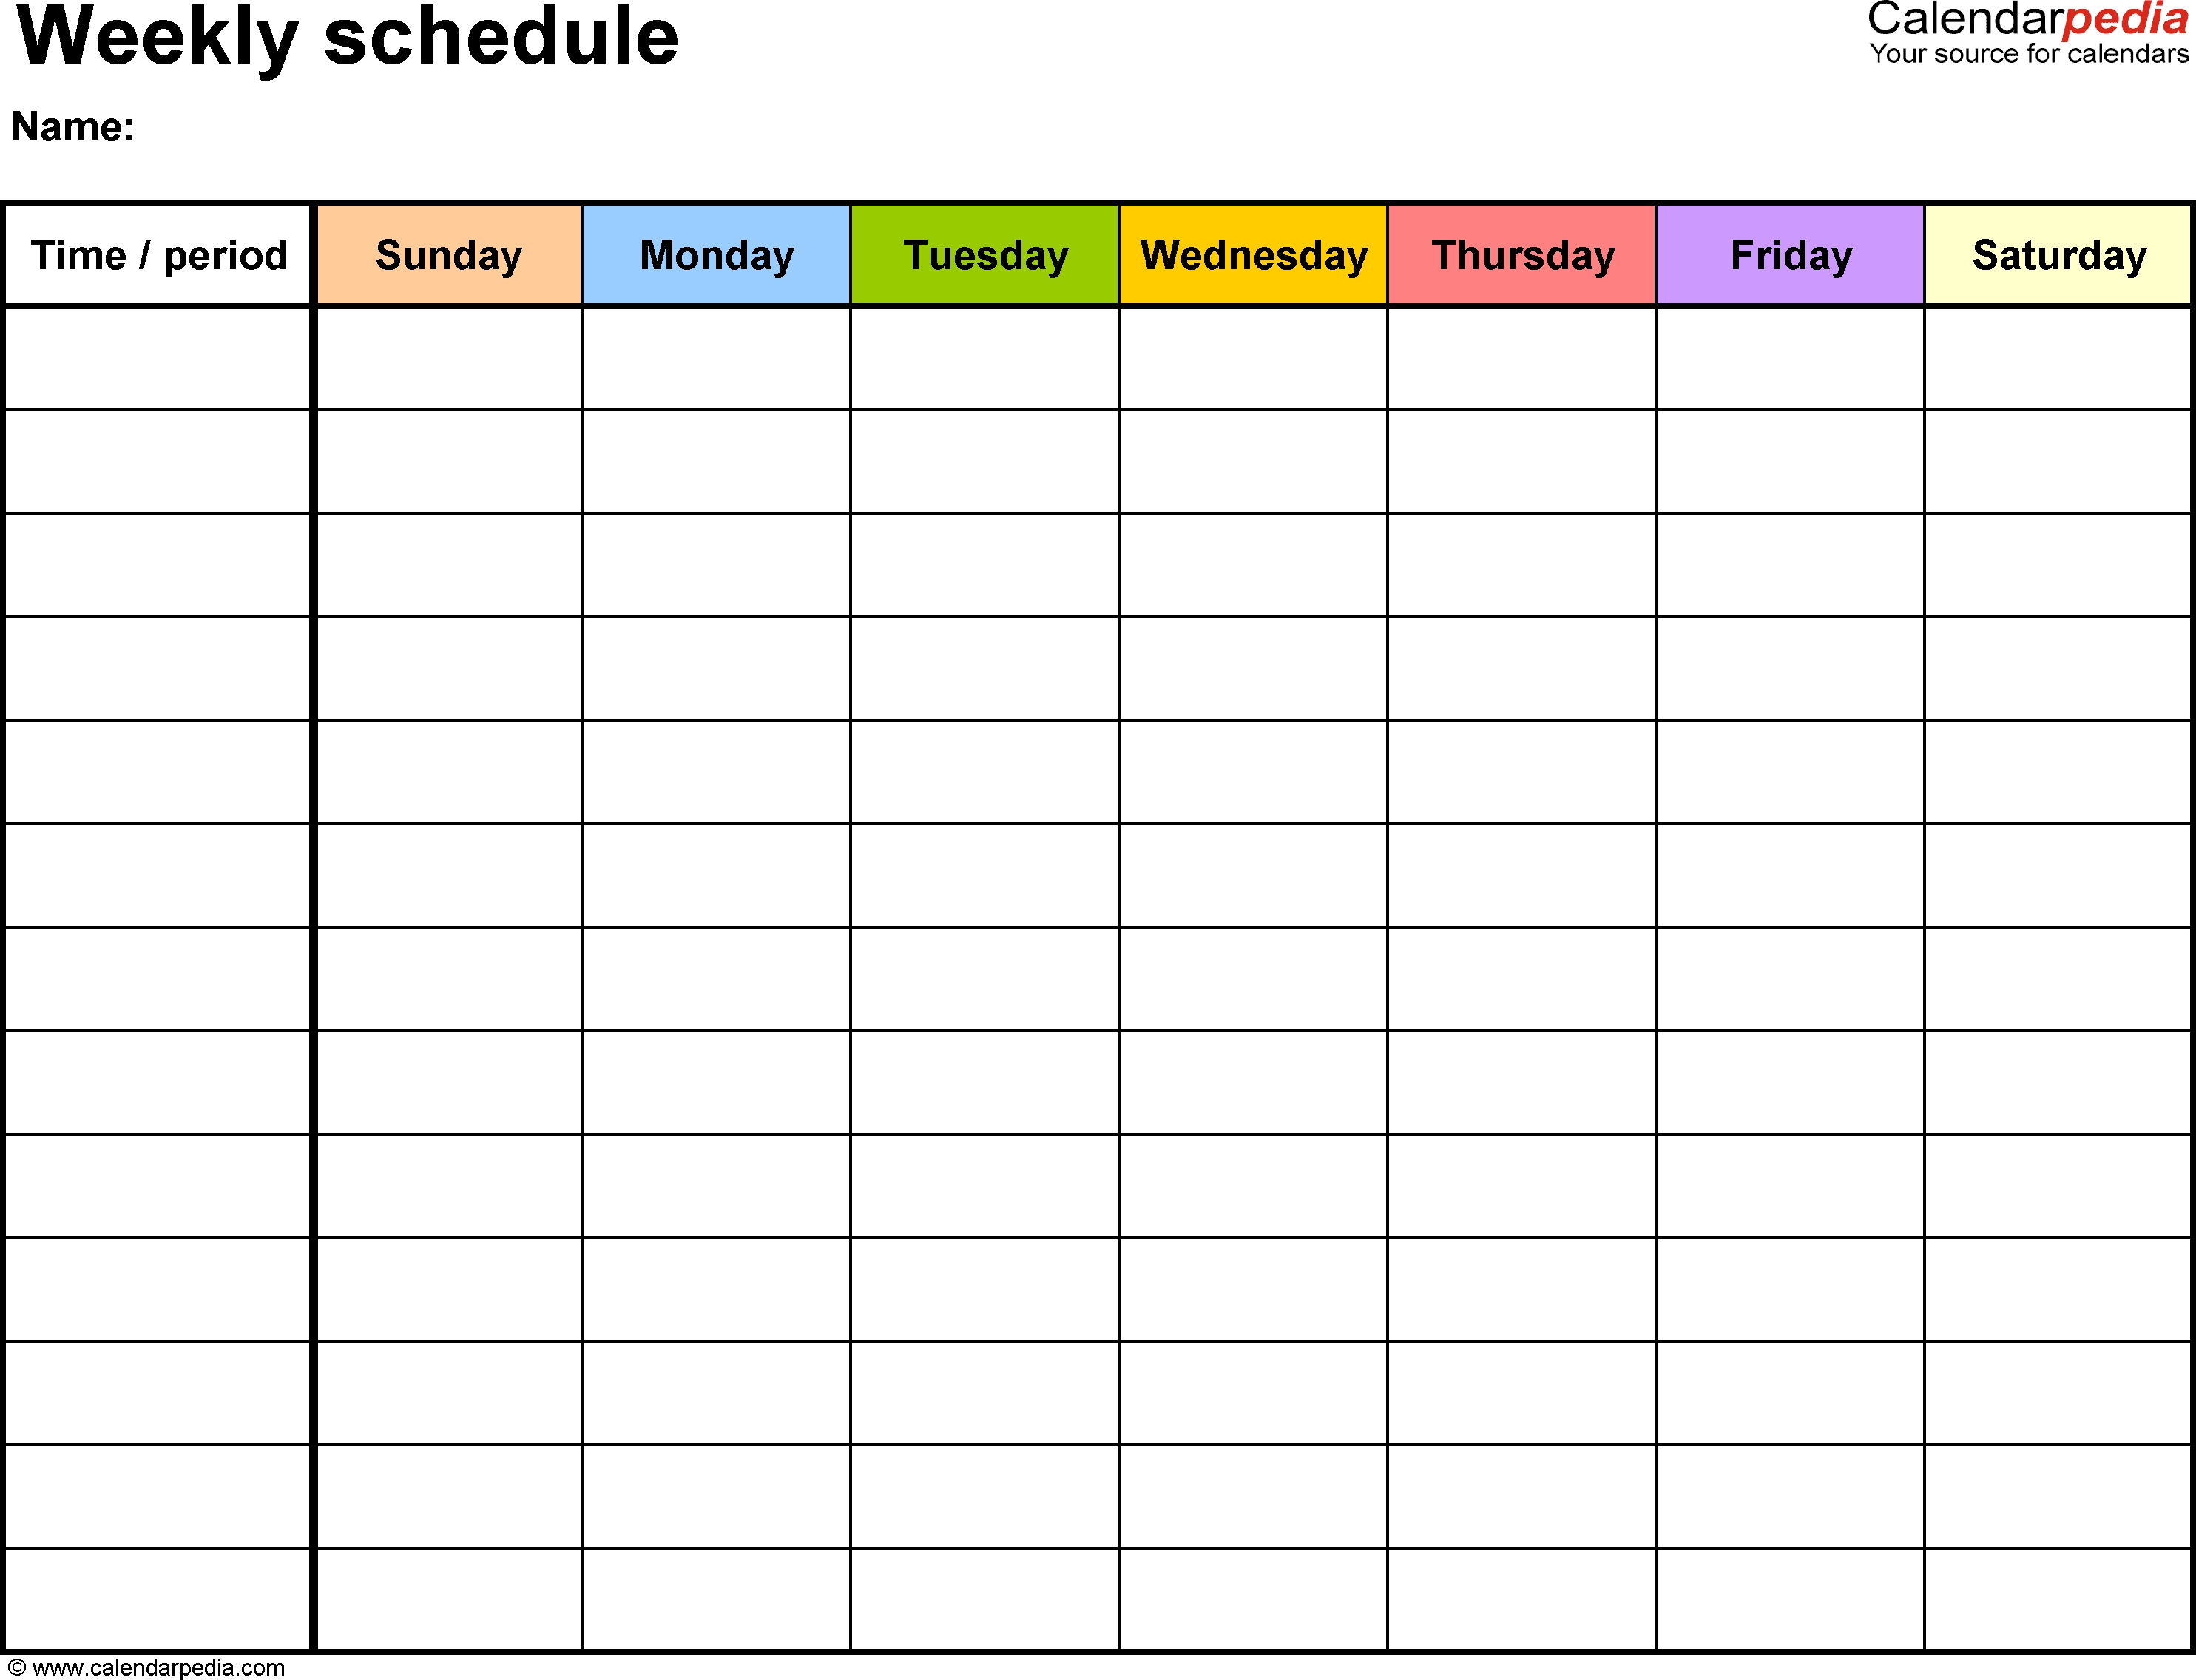 Free Weekly Schedule Templates For Word - 18 Templates-Blank 6 Week Calendar Template